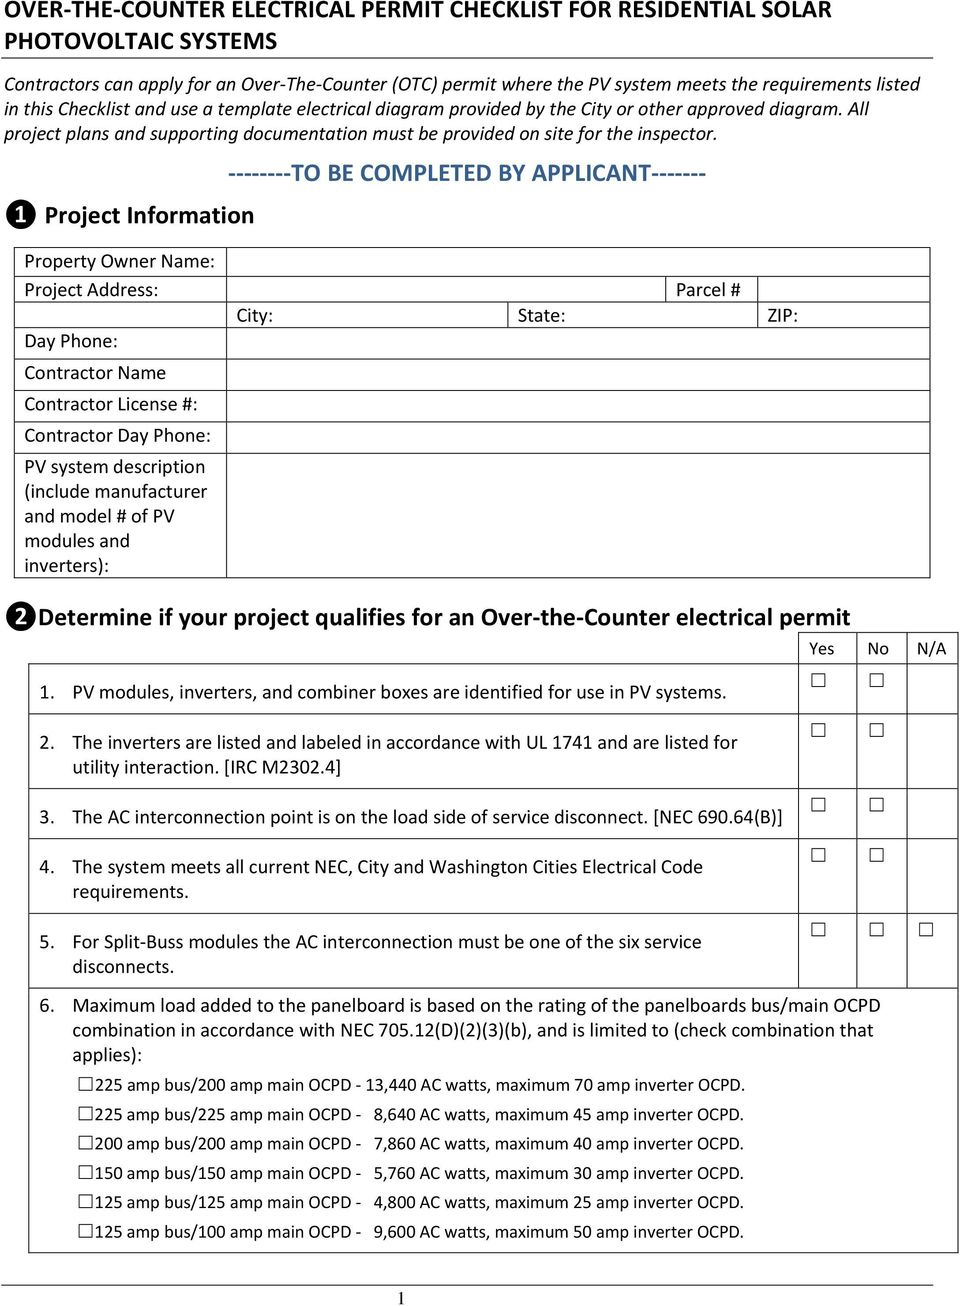 Over The Counter Electrical Permit Checklist For Residential Solar Wiring To Be Completed By Applicant Project Information Property Owner Name Address Parcel